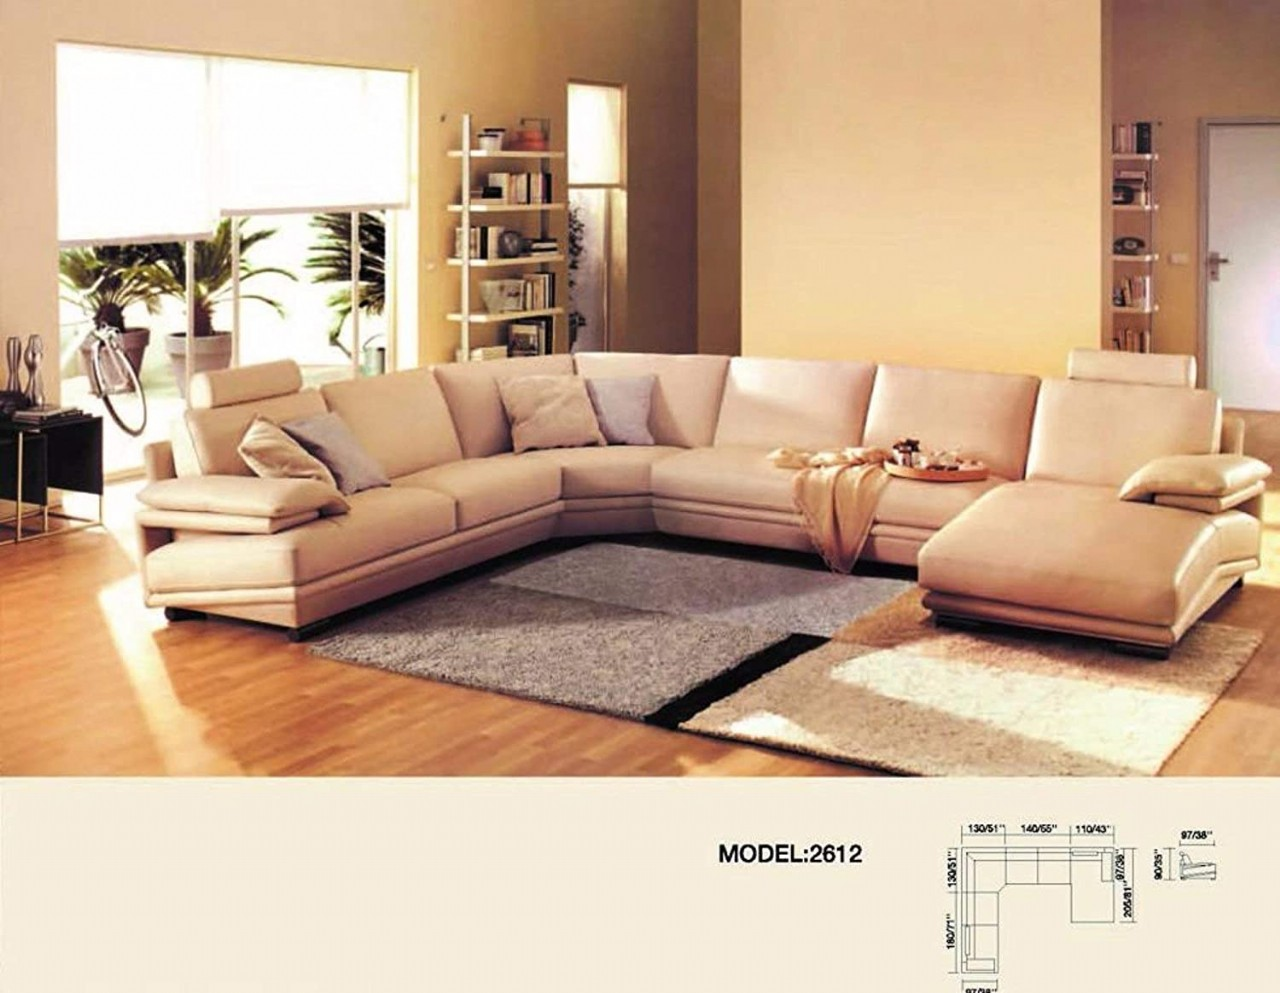 Luxury Perugia Morden Genuine Leather 6 Seater Sectional Sofa with Chaise